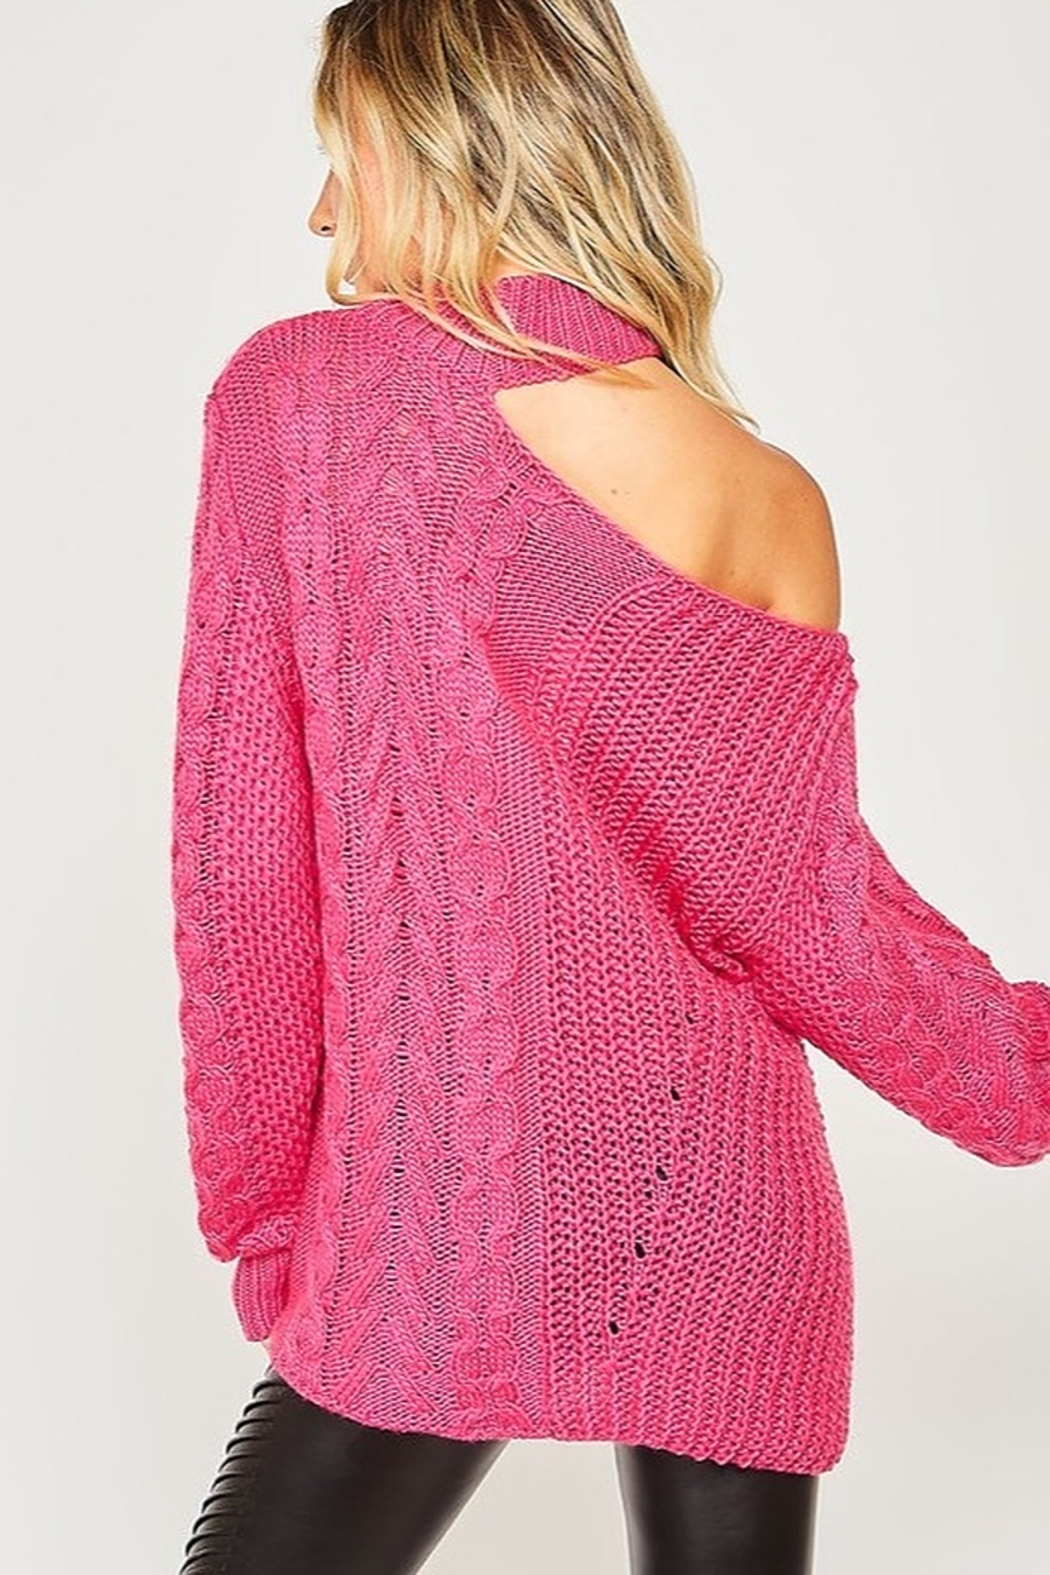 Peach Love California One Shoulder Chunky Cable Knit Sweater - Front Full Image